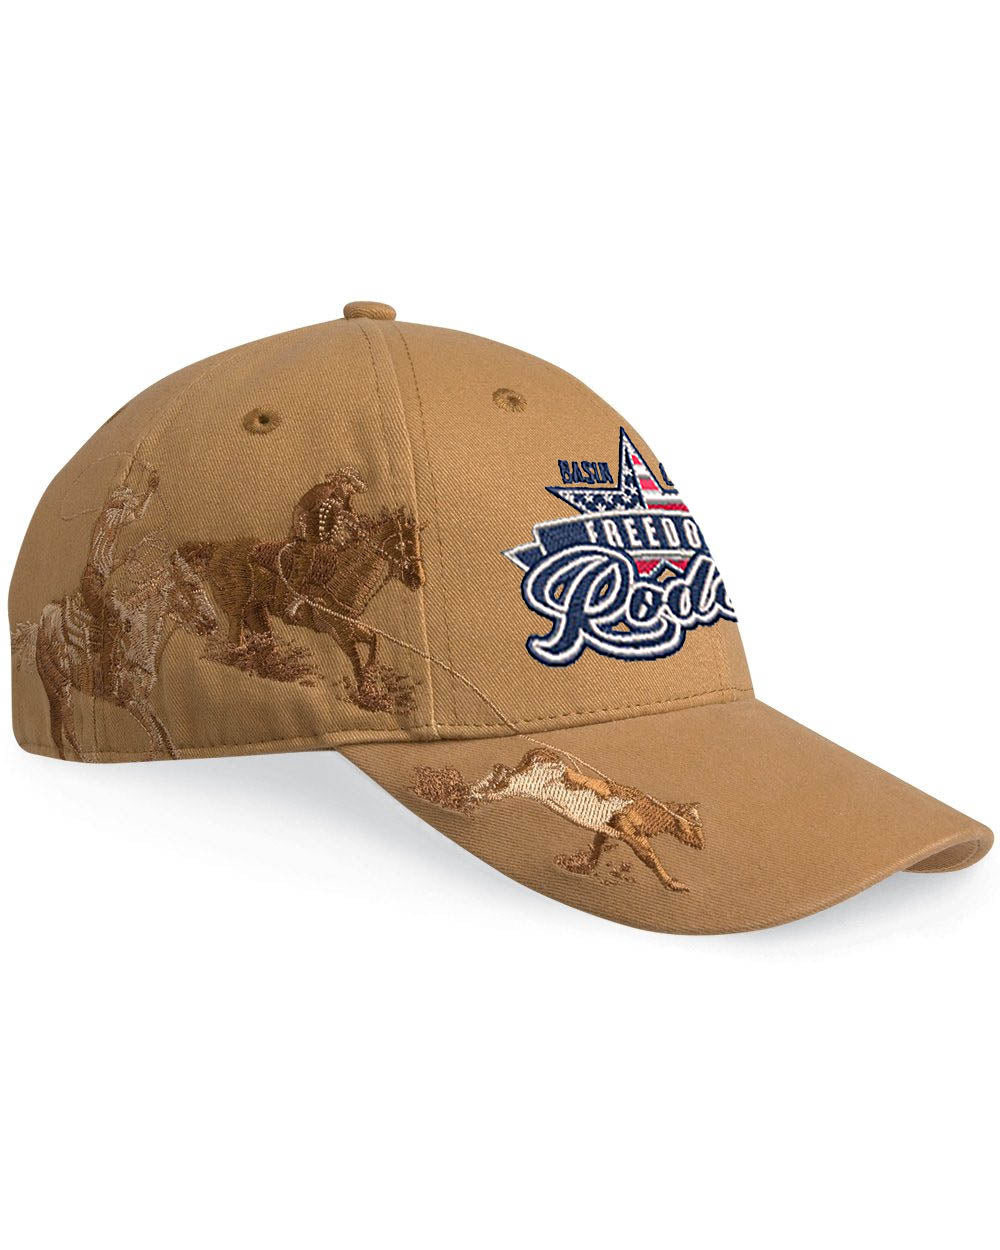 Team Roping Cap - Freedom Rodeo